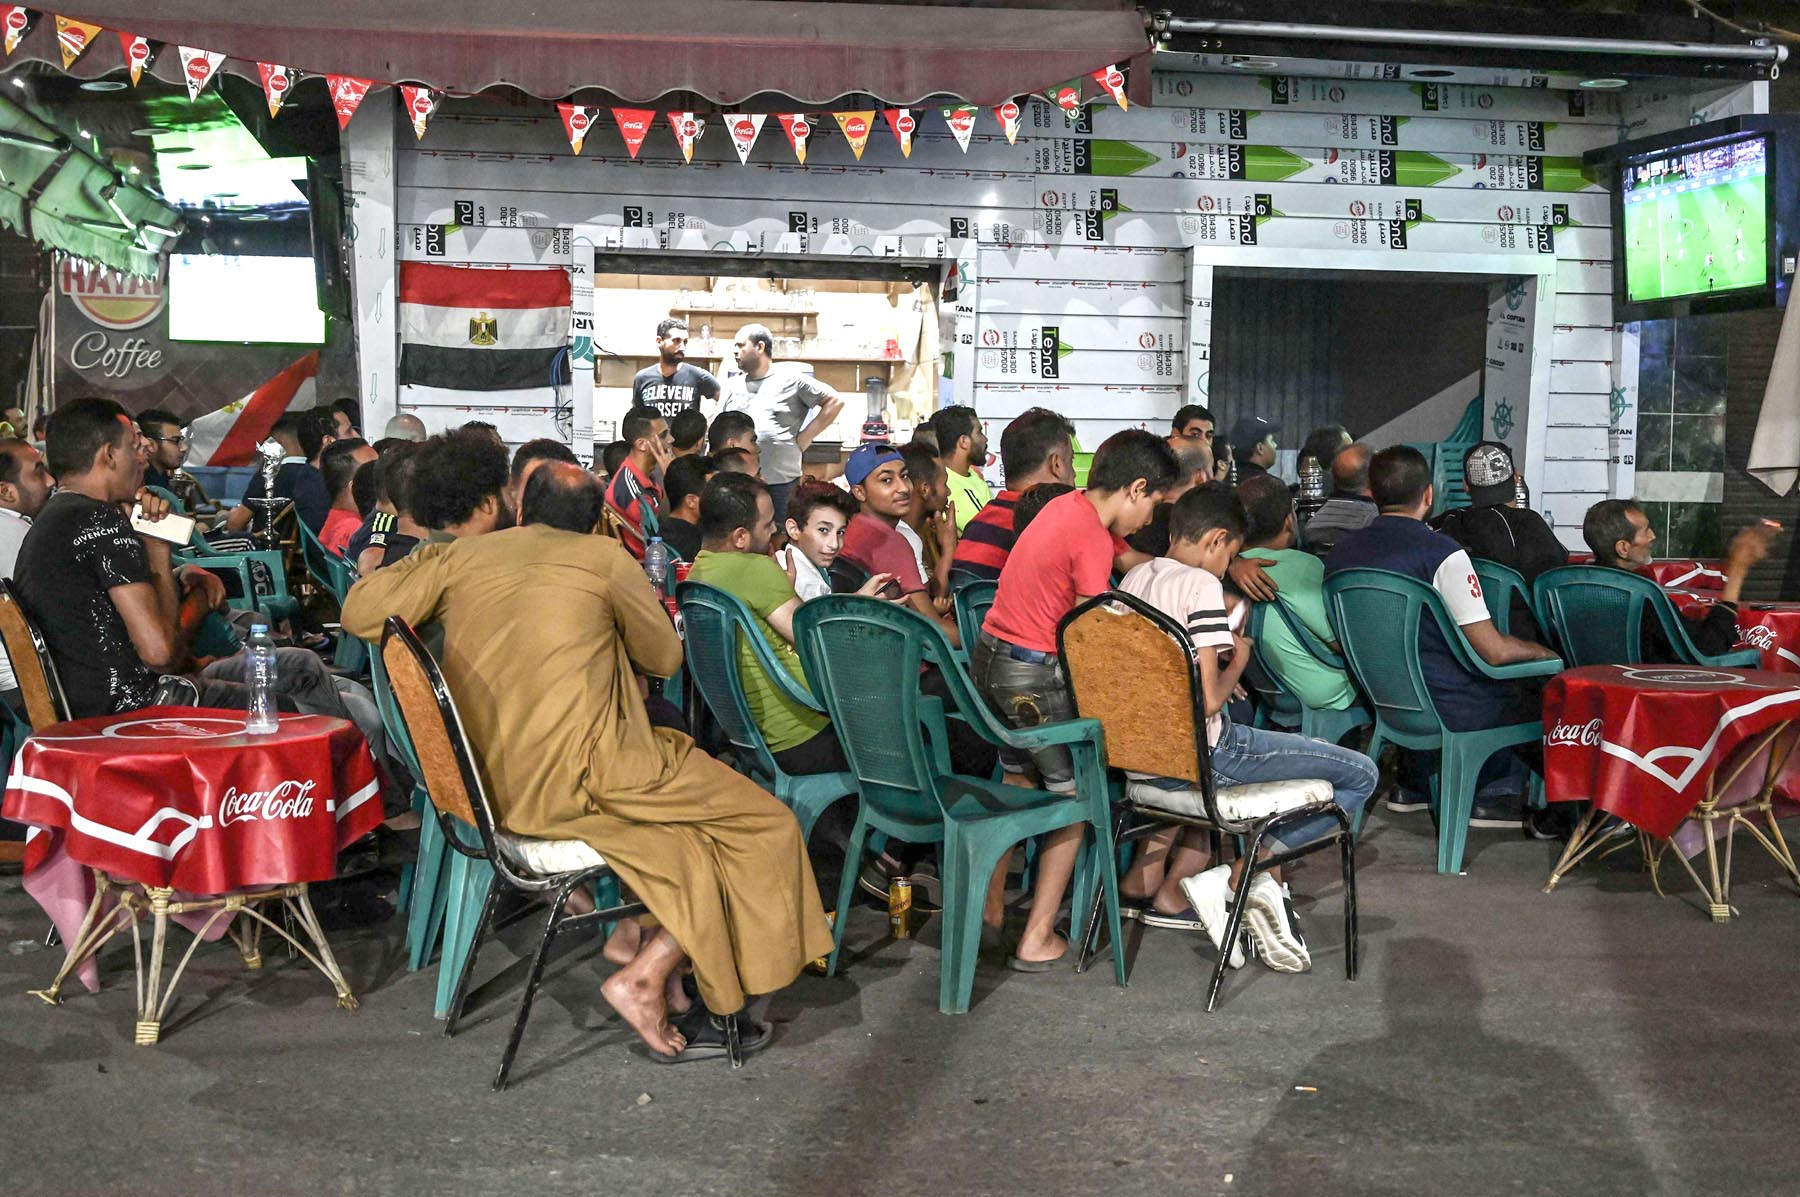 Egyptians gather at a cafe in the city of Ismailia to watch a 2019 Africa Cup of Nations football match, last June. (AFP)